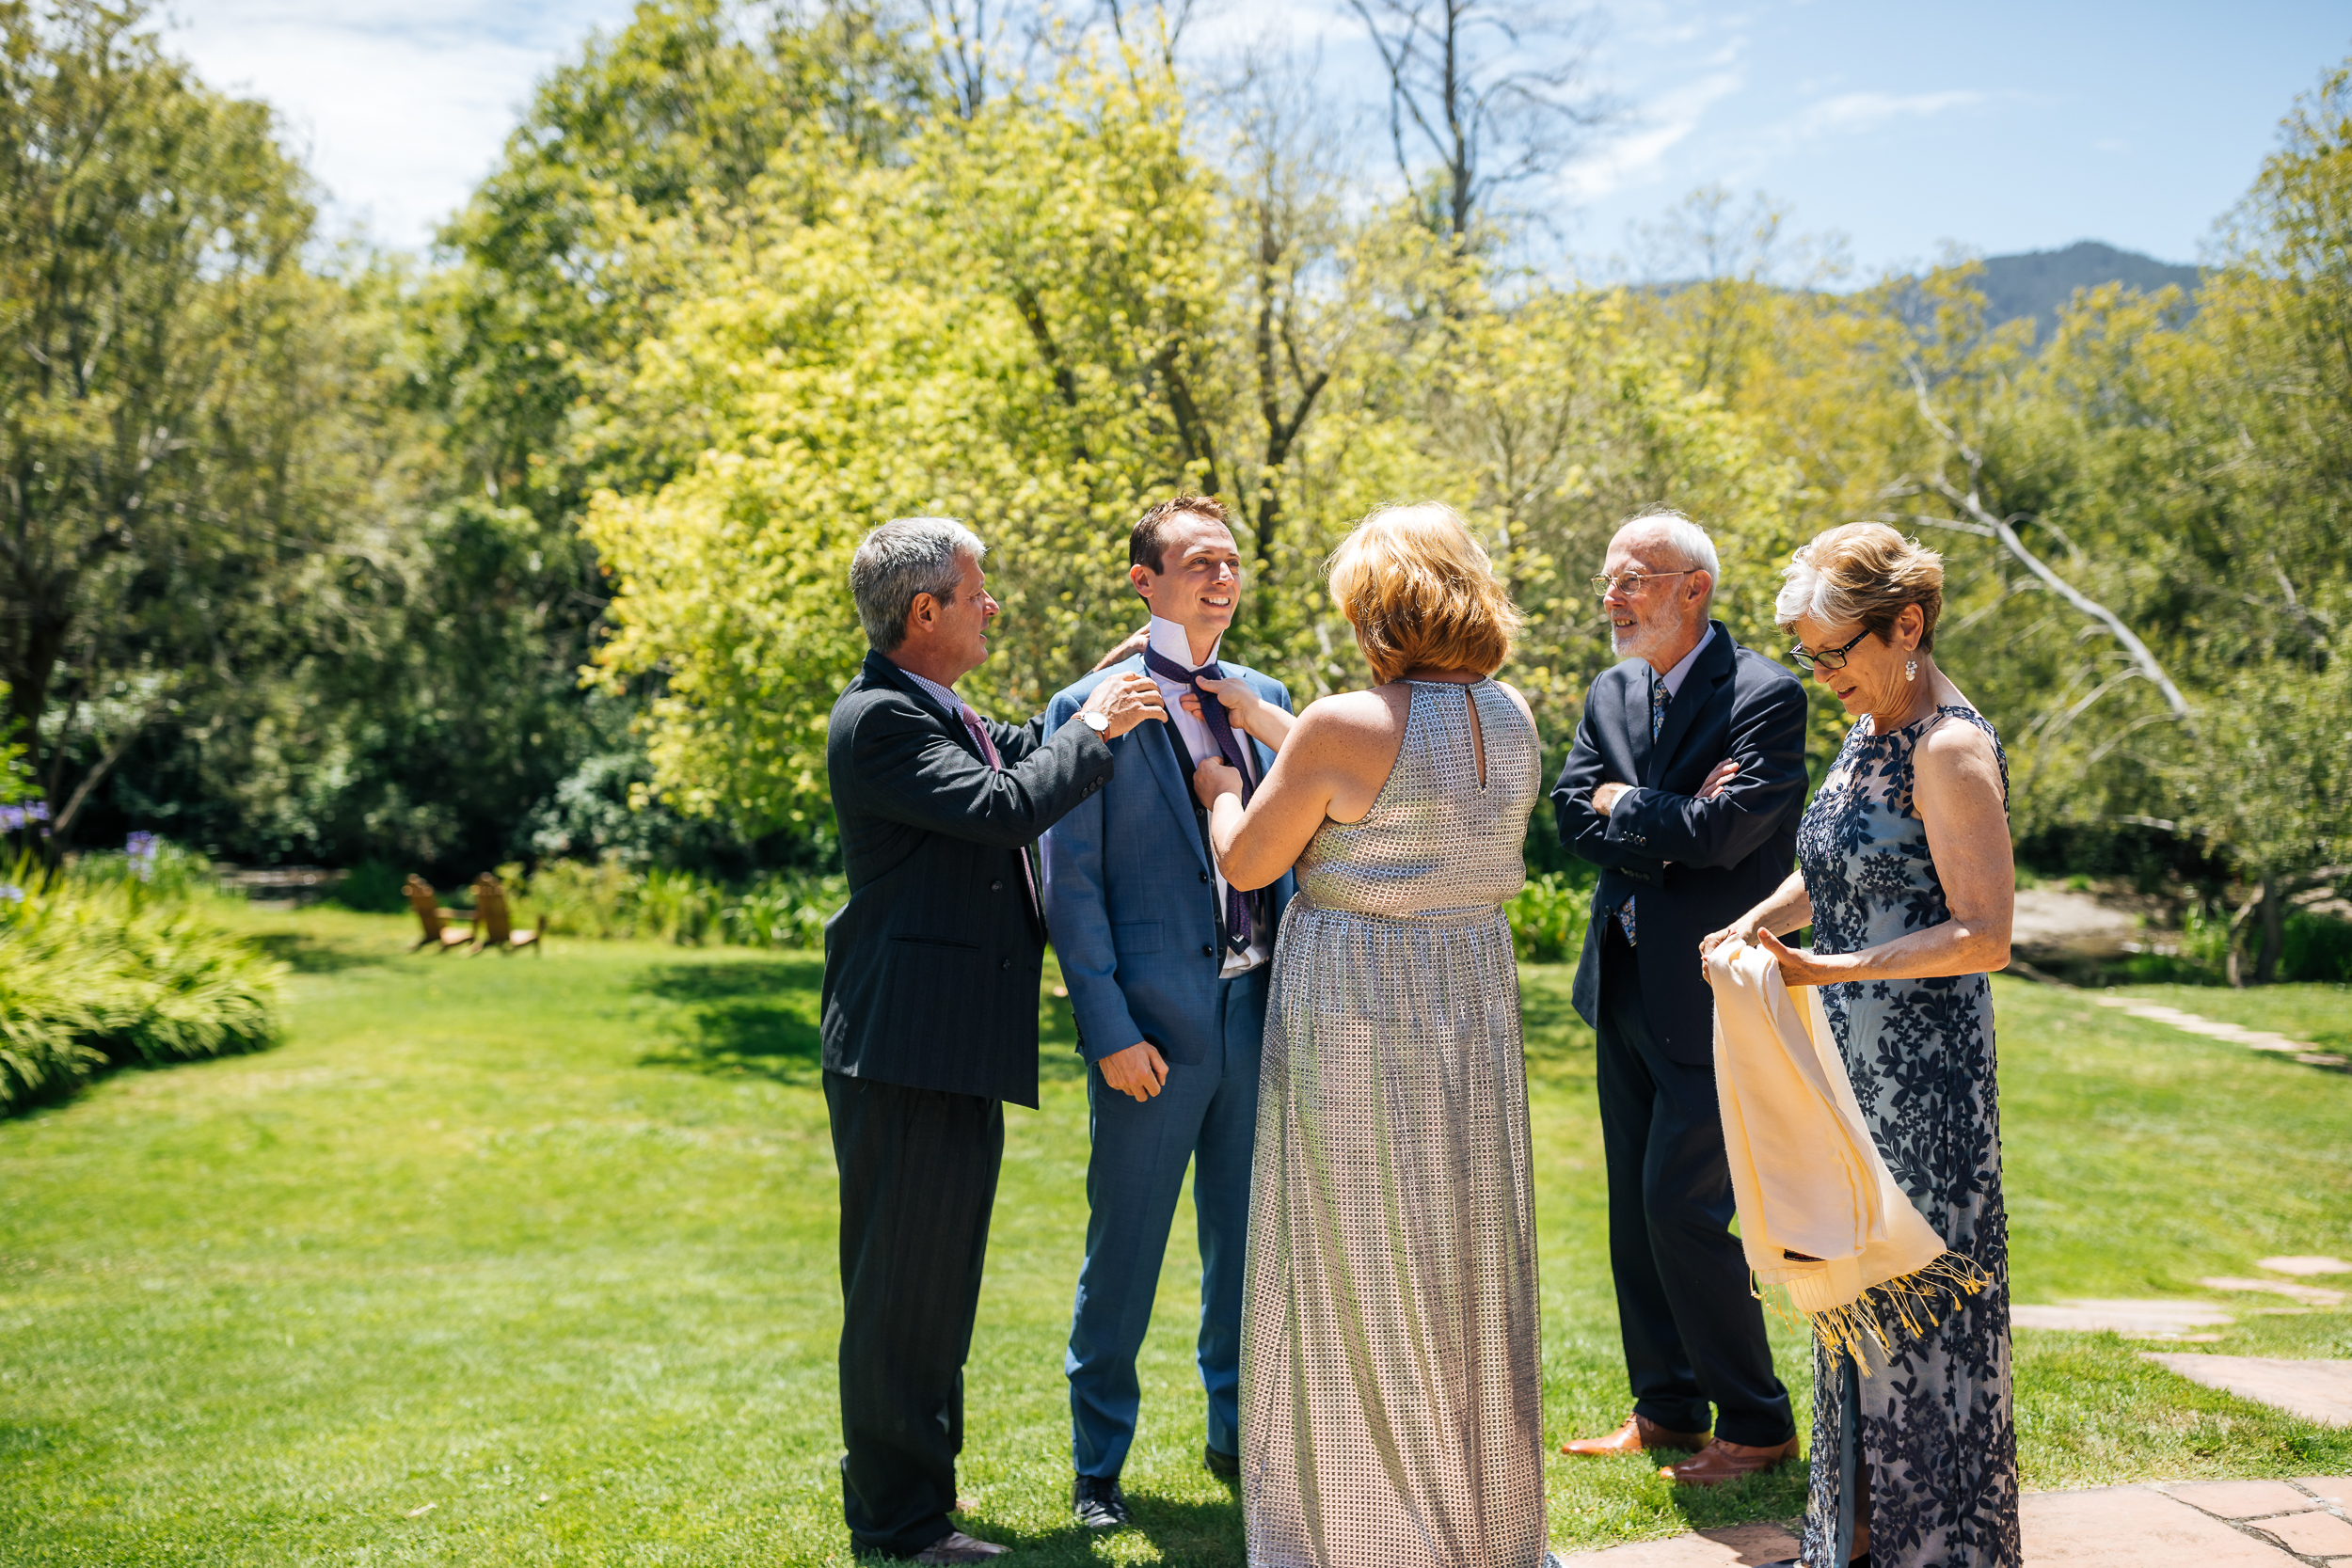 Rancho Nicasio Wedding 2018-108.jpg